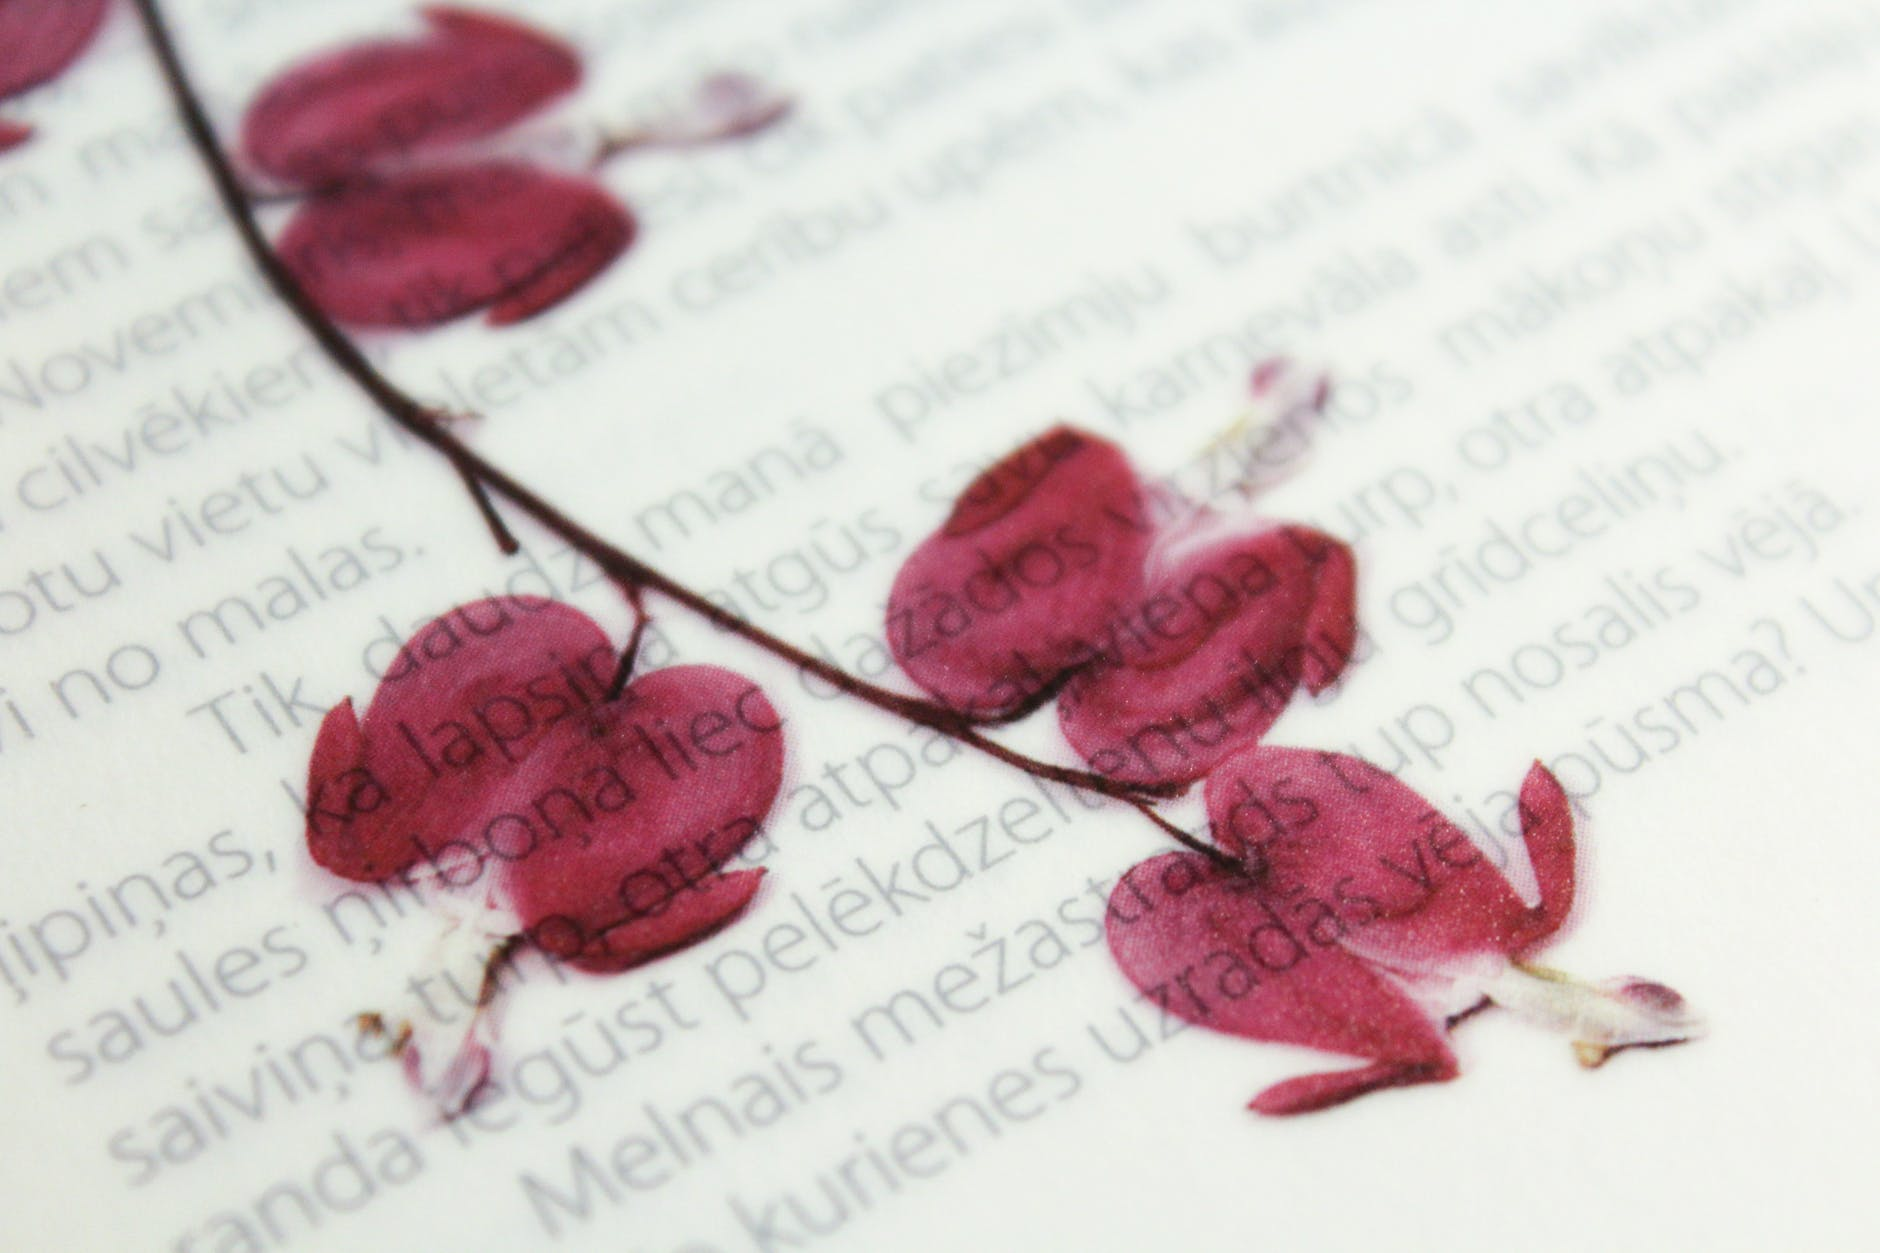 dried flowers with printed text